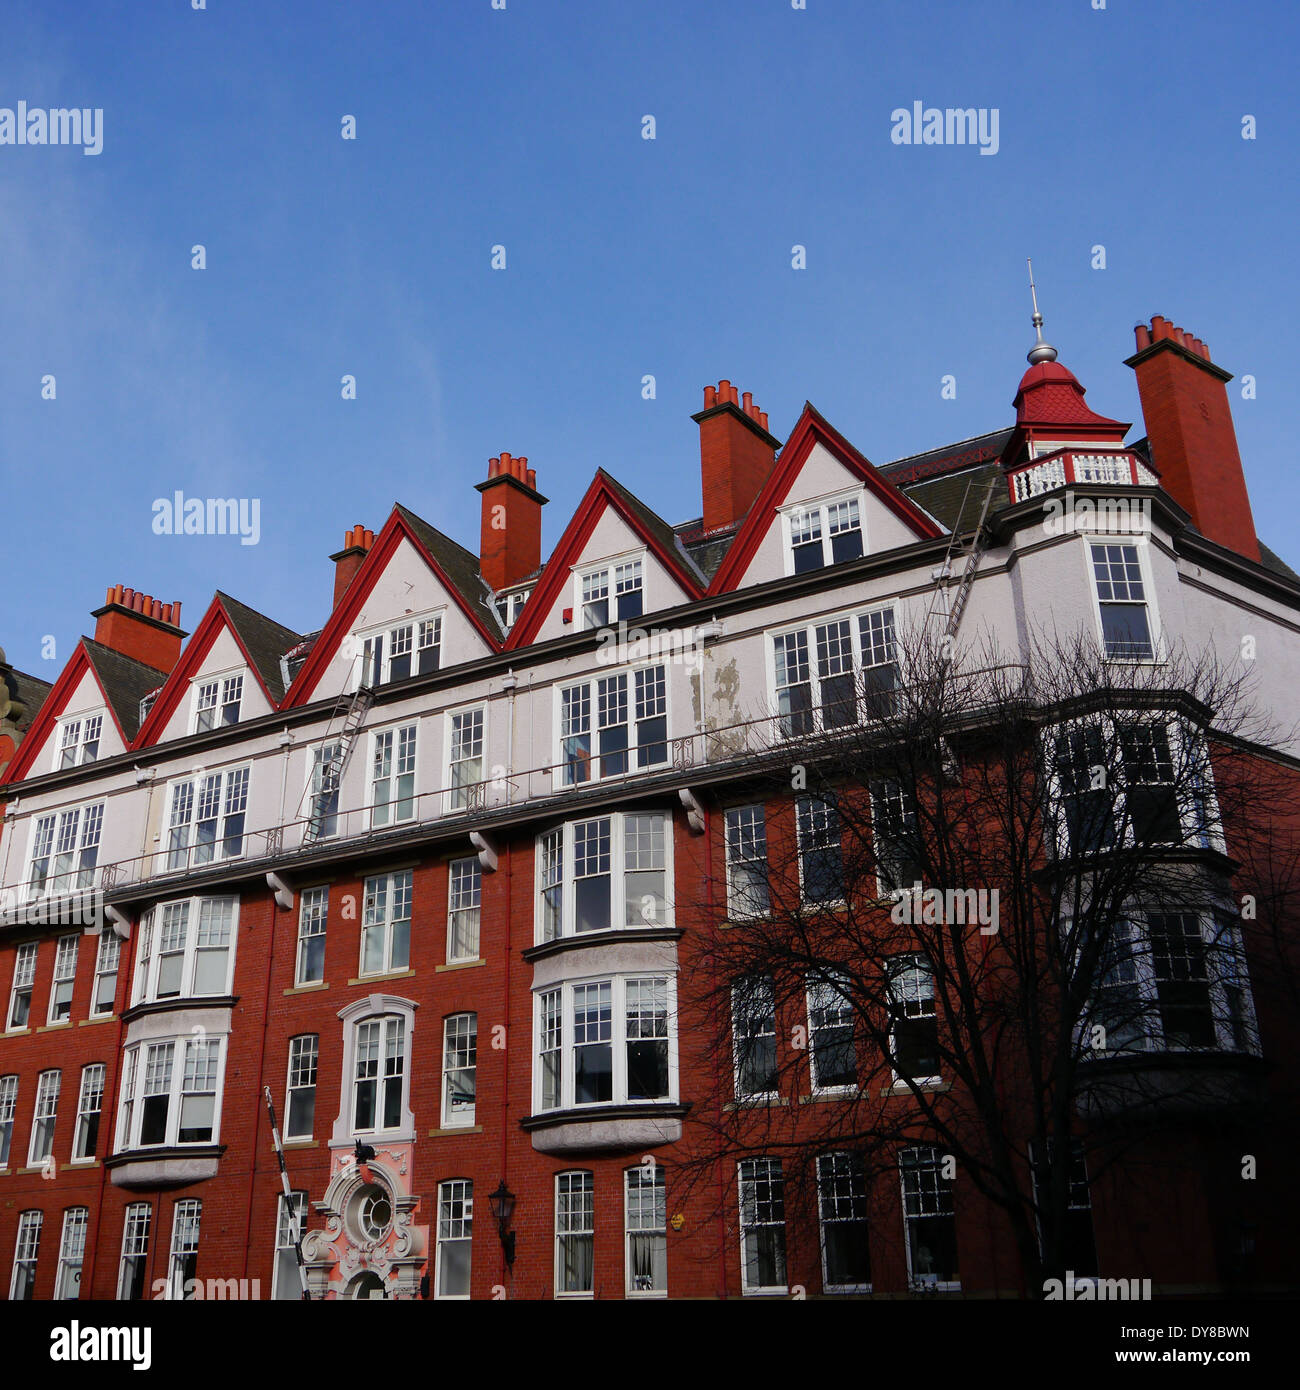 Rear view of Cathedral Buildings, Dean Street, Newcastle upon Tyne, England, UK - Stock Image